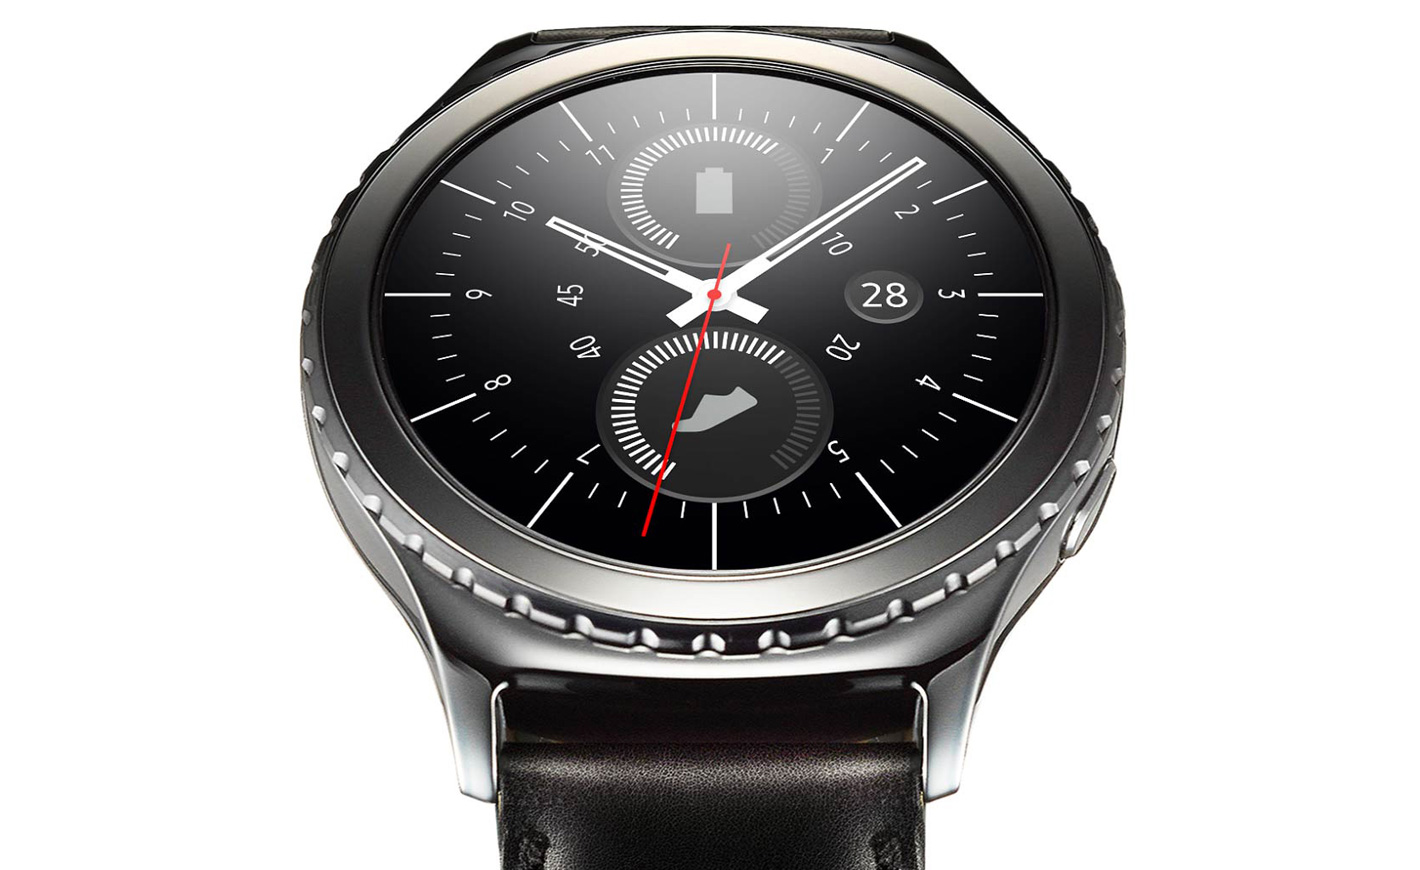 samsung gear s2 avis prix et caract ristiques de la montre. Black Bedroom Furniture Sets. Home Design Ideas